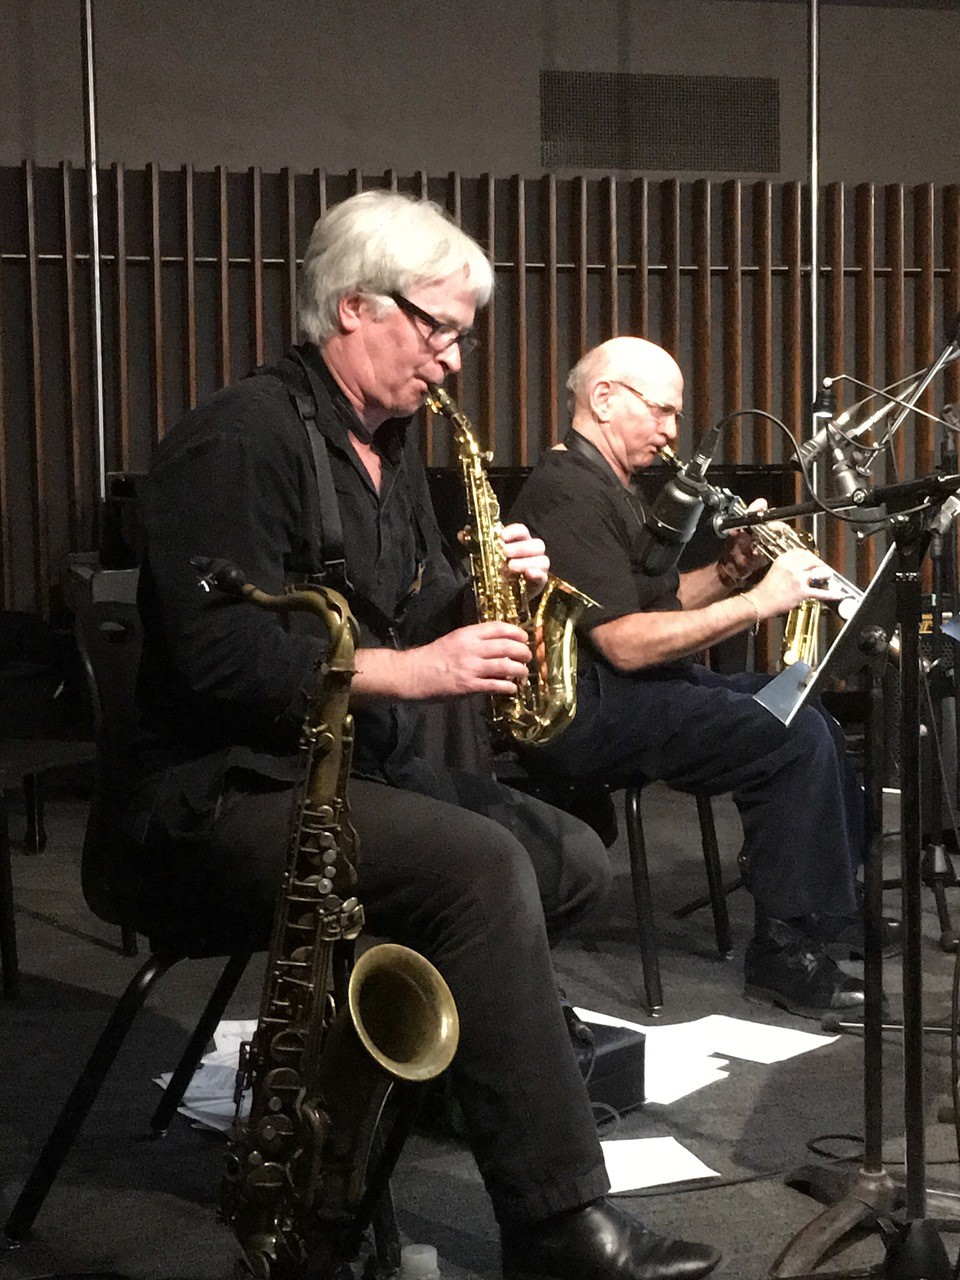 Murley Liebman Live at U of T recording at Upper Jazz Studio Jan 6, 2017